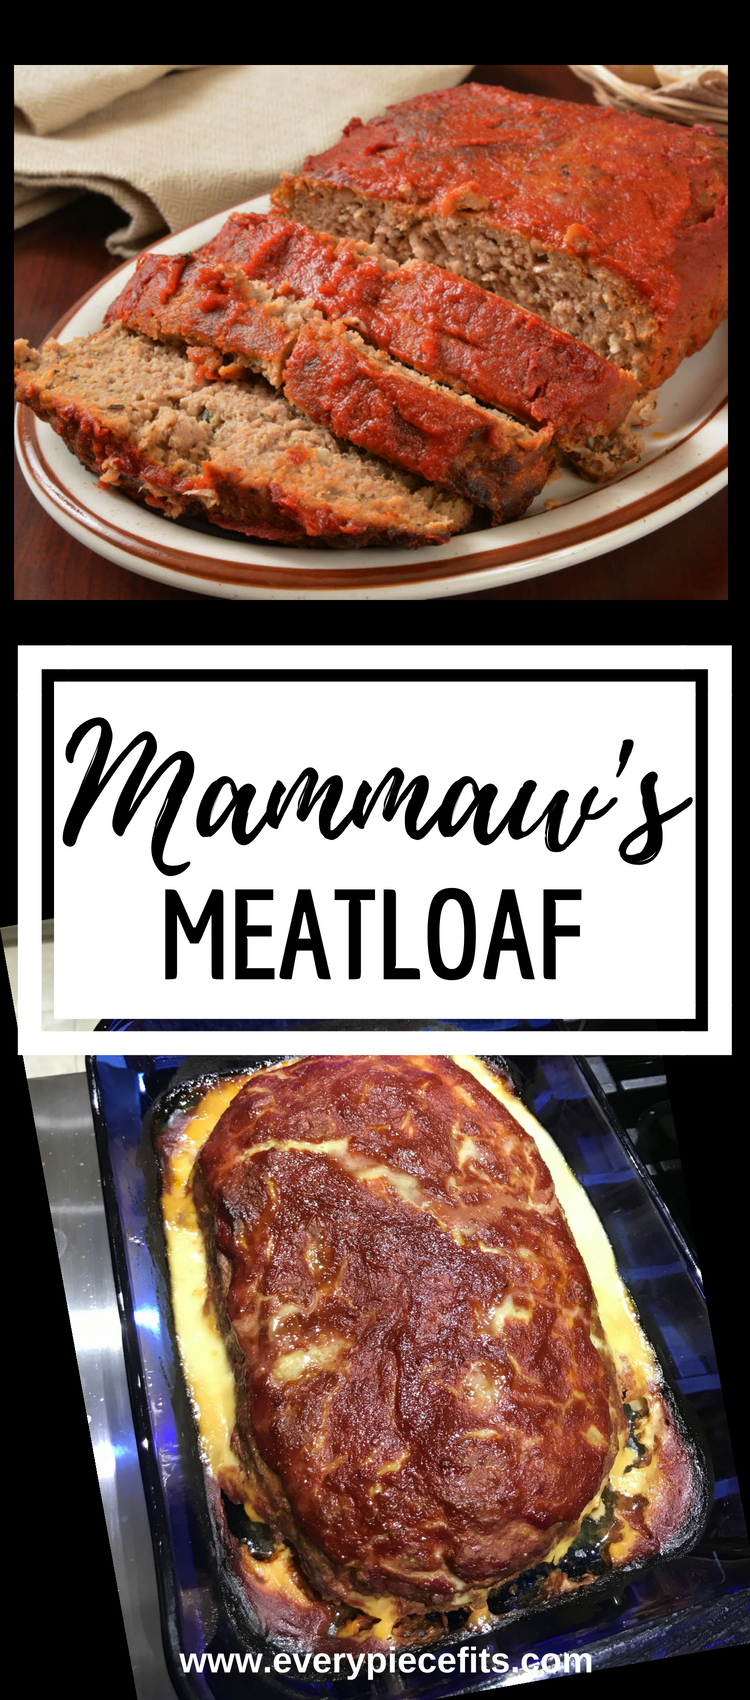 Mammaw's meatloaf.png